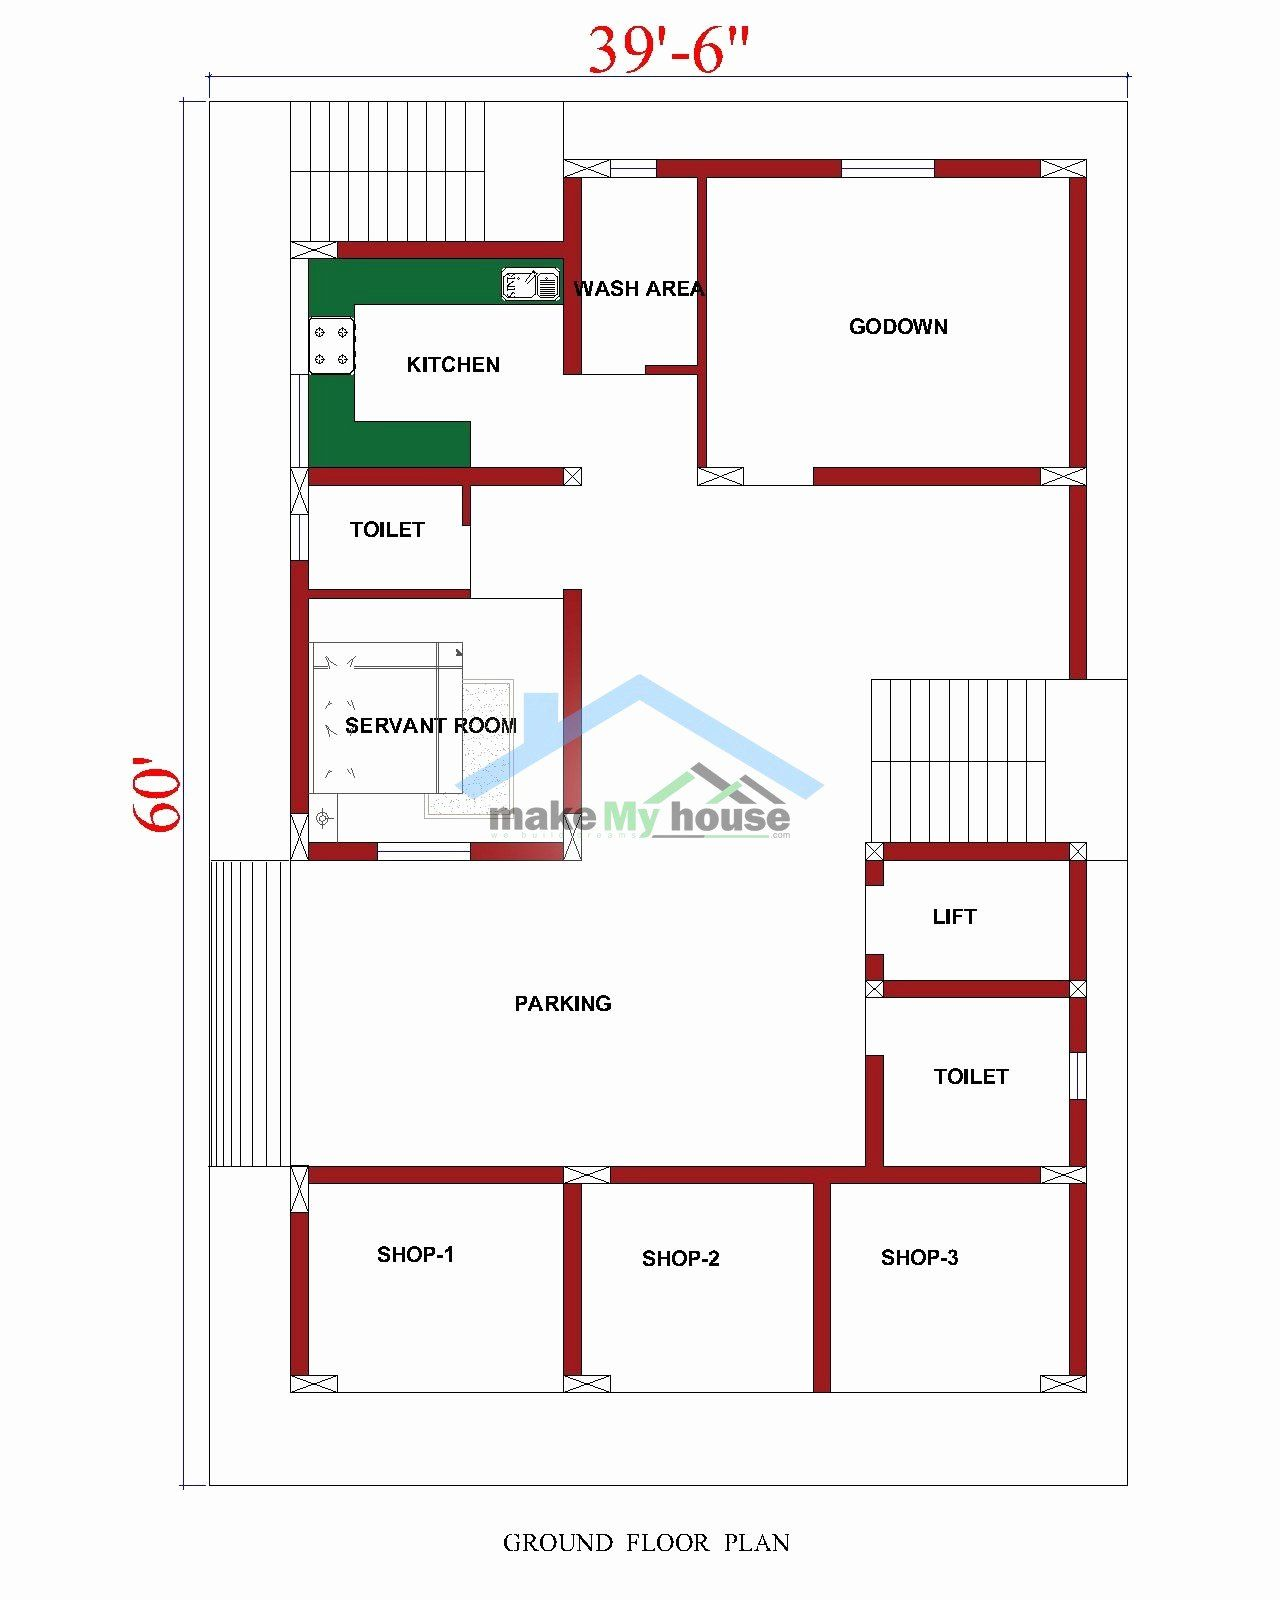 2400 Sq Ft Home Design Luxury What Is The Best Suitable Plan For A 2400 Sq Ft Residential In 2020 40x60 House Plans House Plans House Design